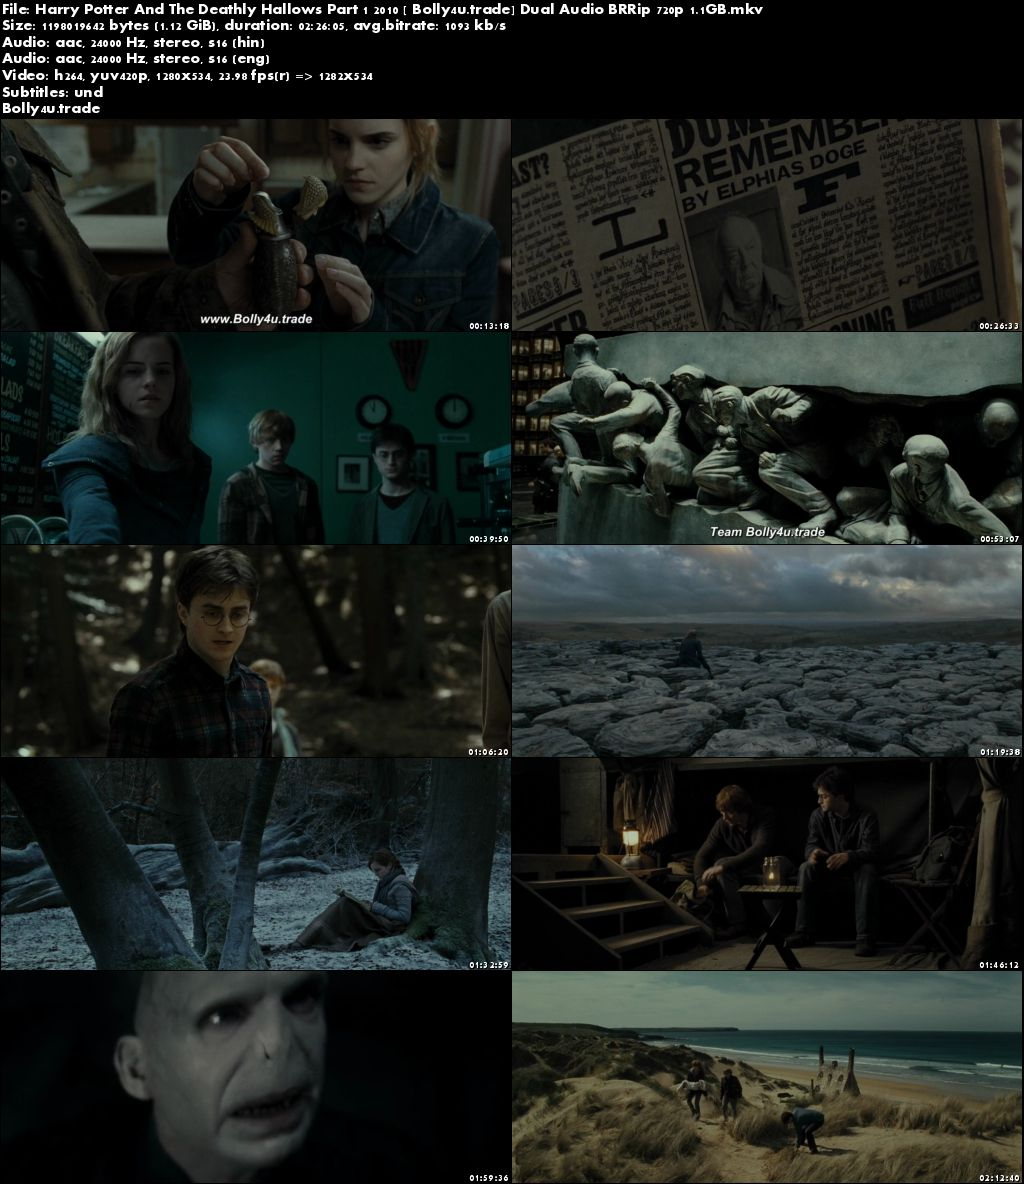 Harry Potter And The Deathly Hallows Part 1 2010 BRRip Hindi Dual Audio 720p Download